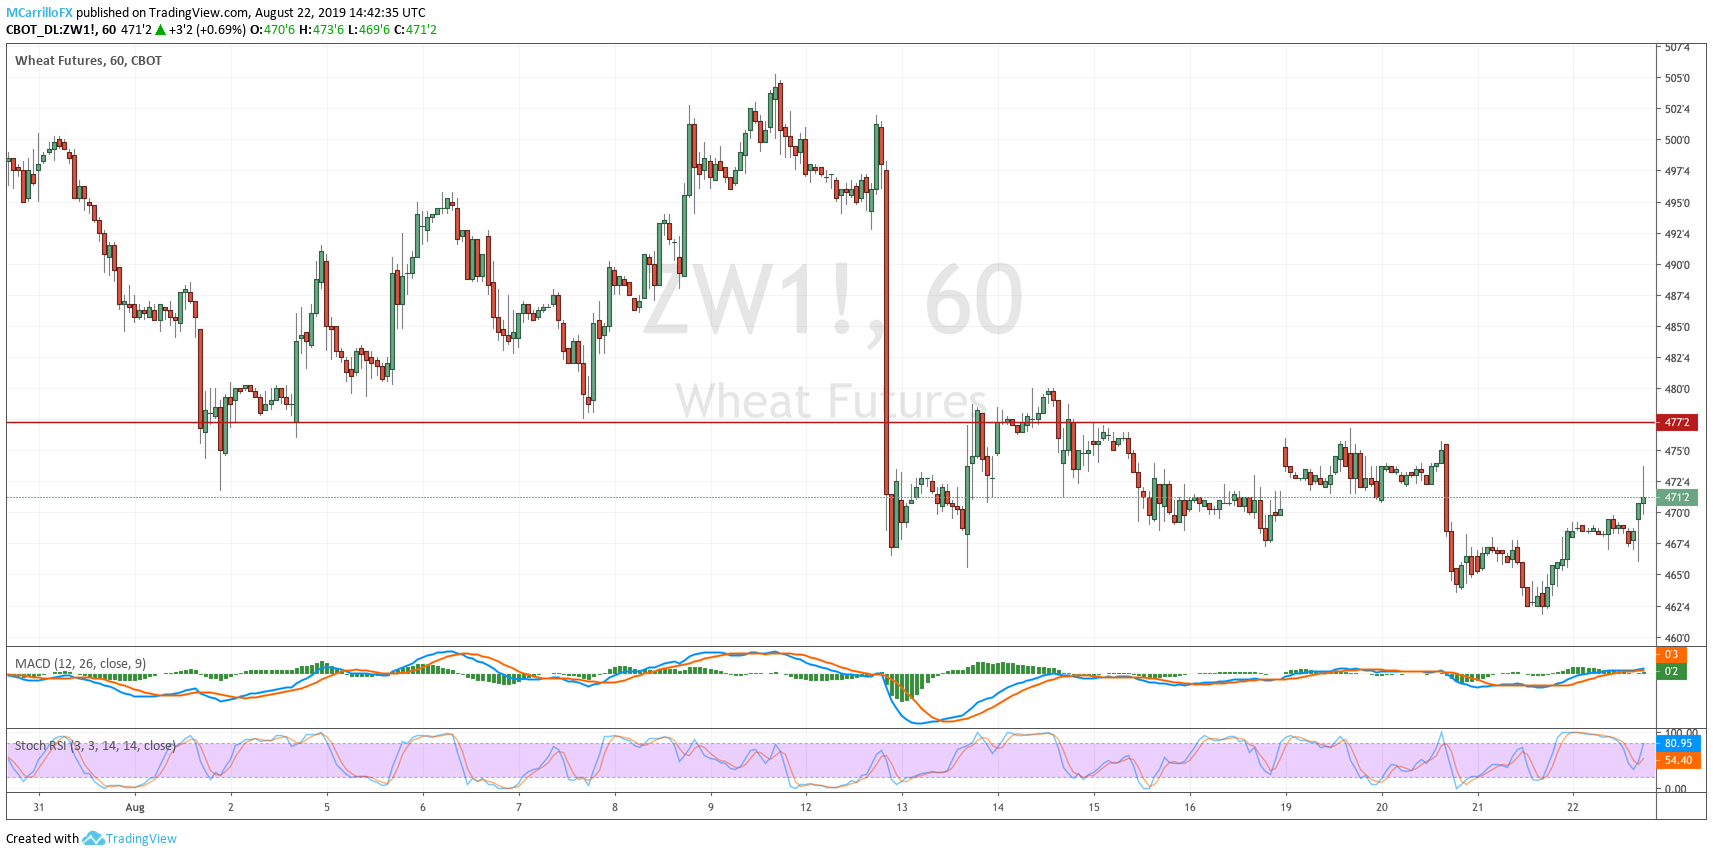 ZW1 Wheat Futures 1-hour chart August 22